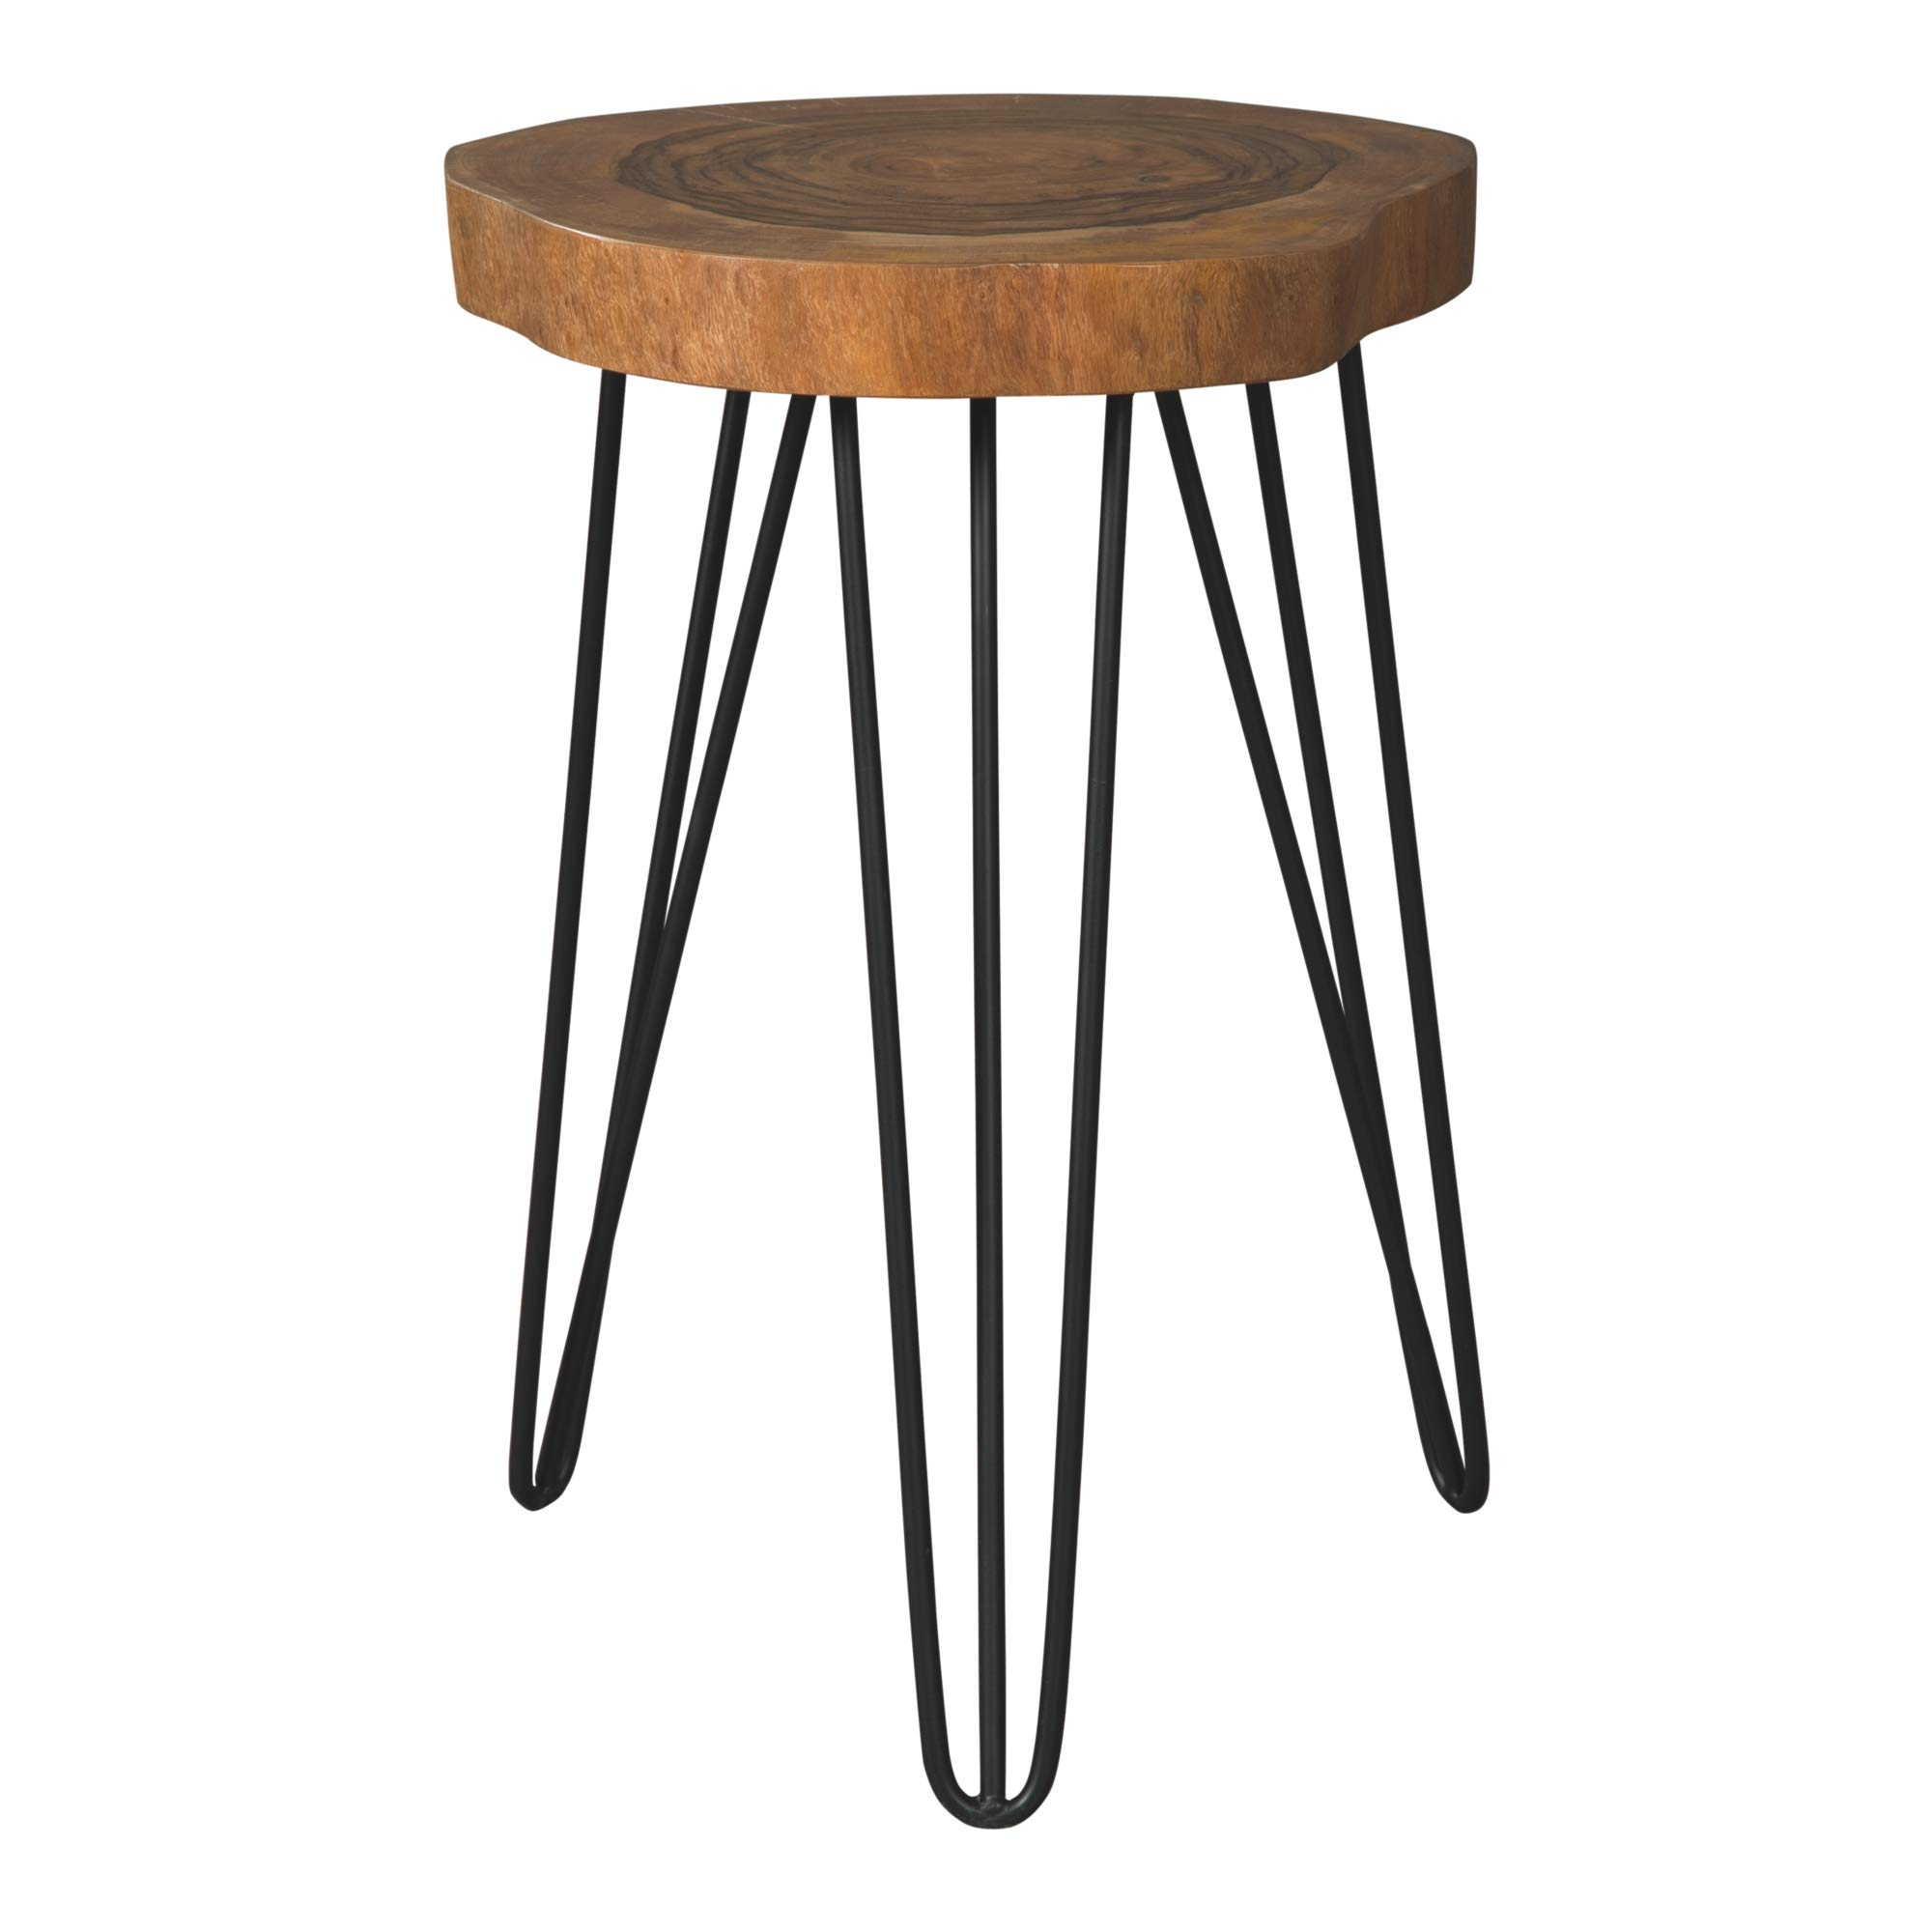 Ashley Furniture Signature Design - Eversboro Accent Table - Faux Natural Edge - Brown/Black by Signature Design by Ashley